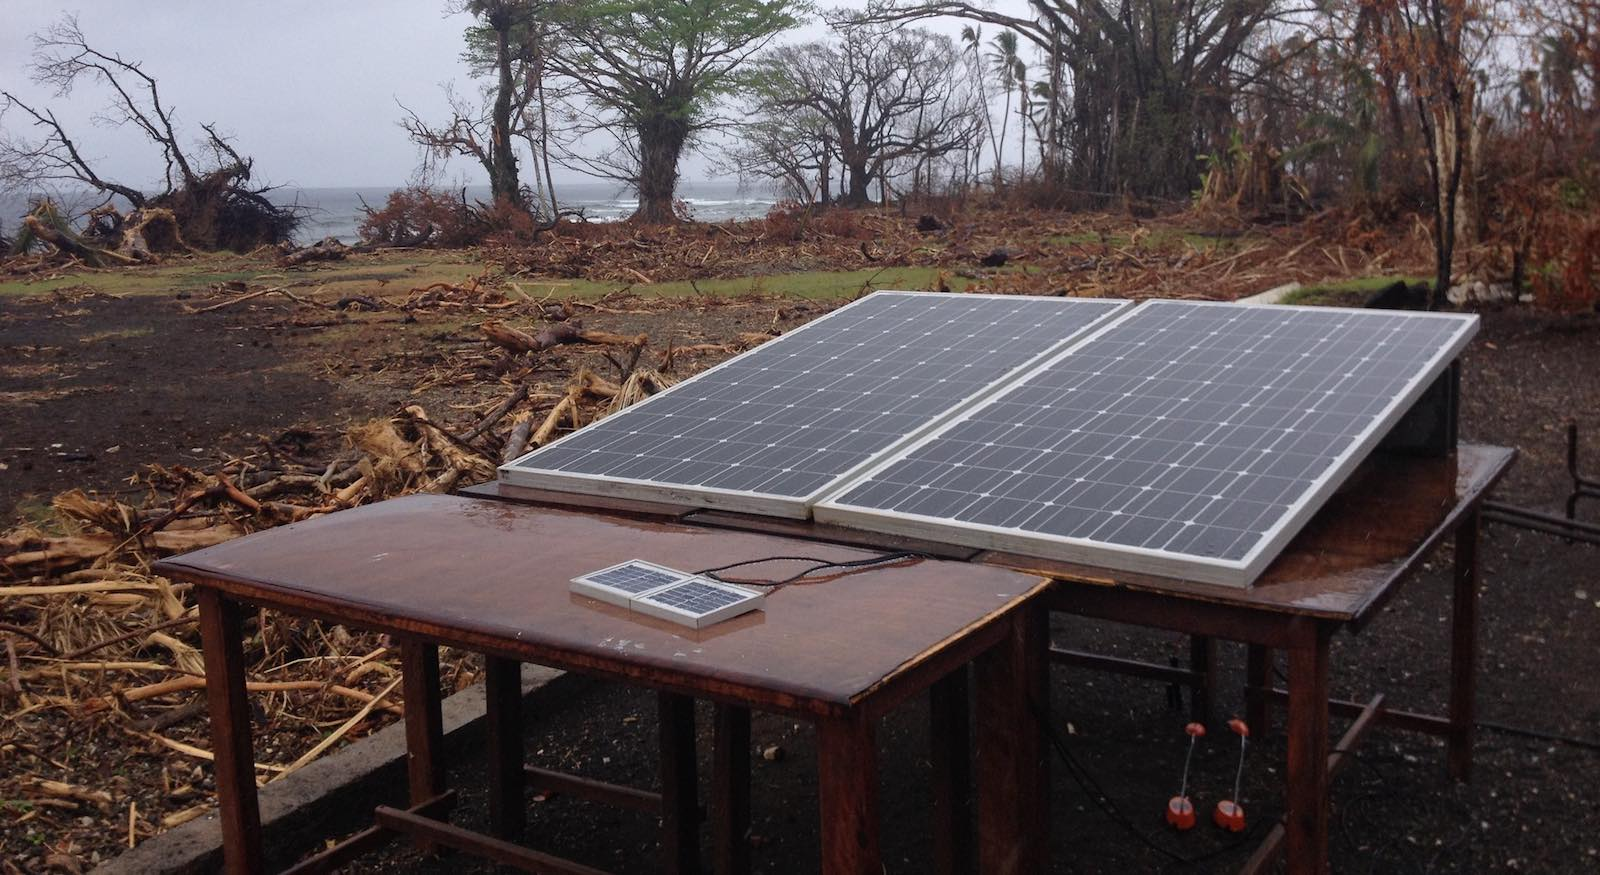 Solar panels can be readily deployed for electricity - whether to charge a mobile phone or here, in Vanuatu in 2015 following Cyclone Pam (Photo: UNDP)